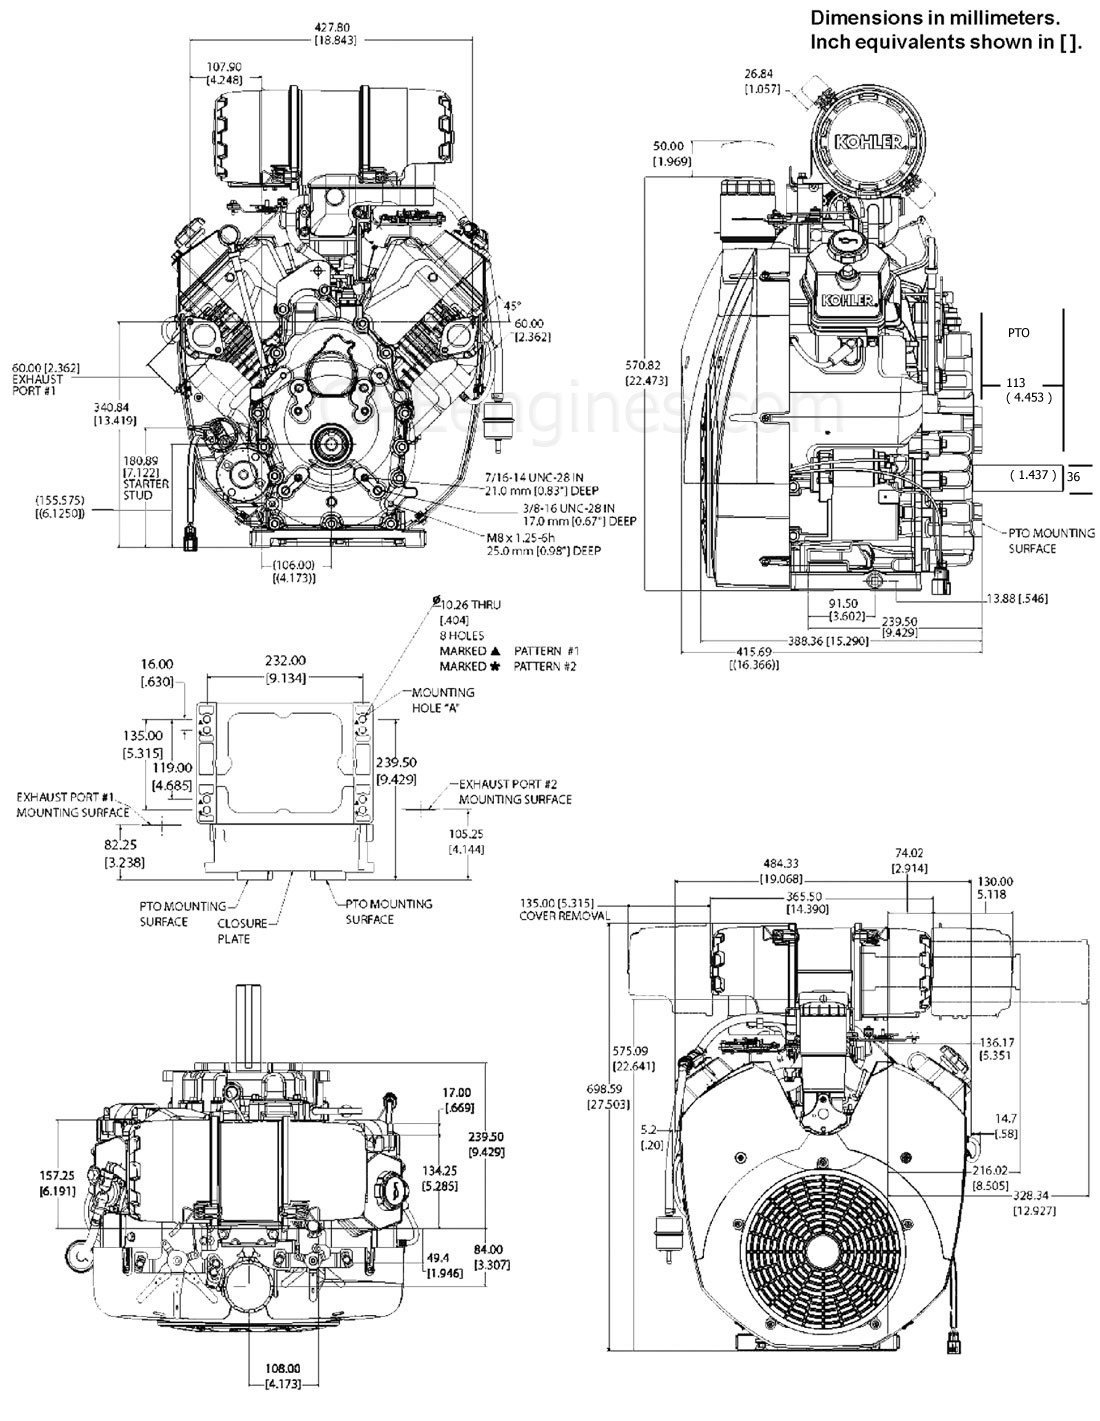 CH980_drawings ch940 ch960 ch980 ch1000 drawings kohler engines and parts store Kohler Key Switch Wiring Diagram at crackthecode.co